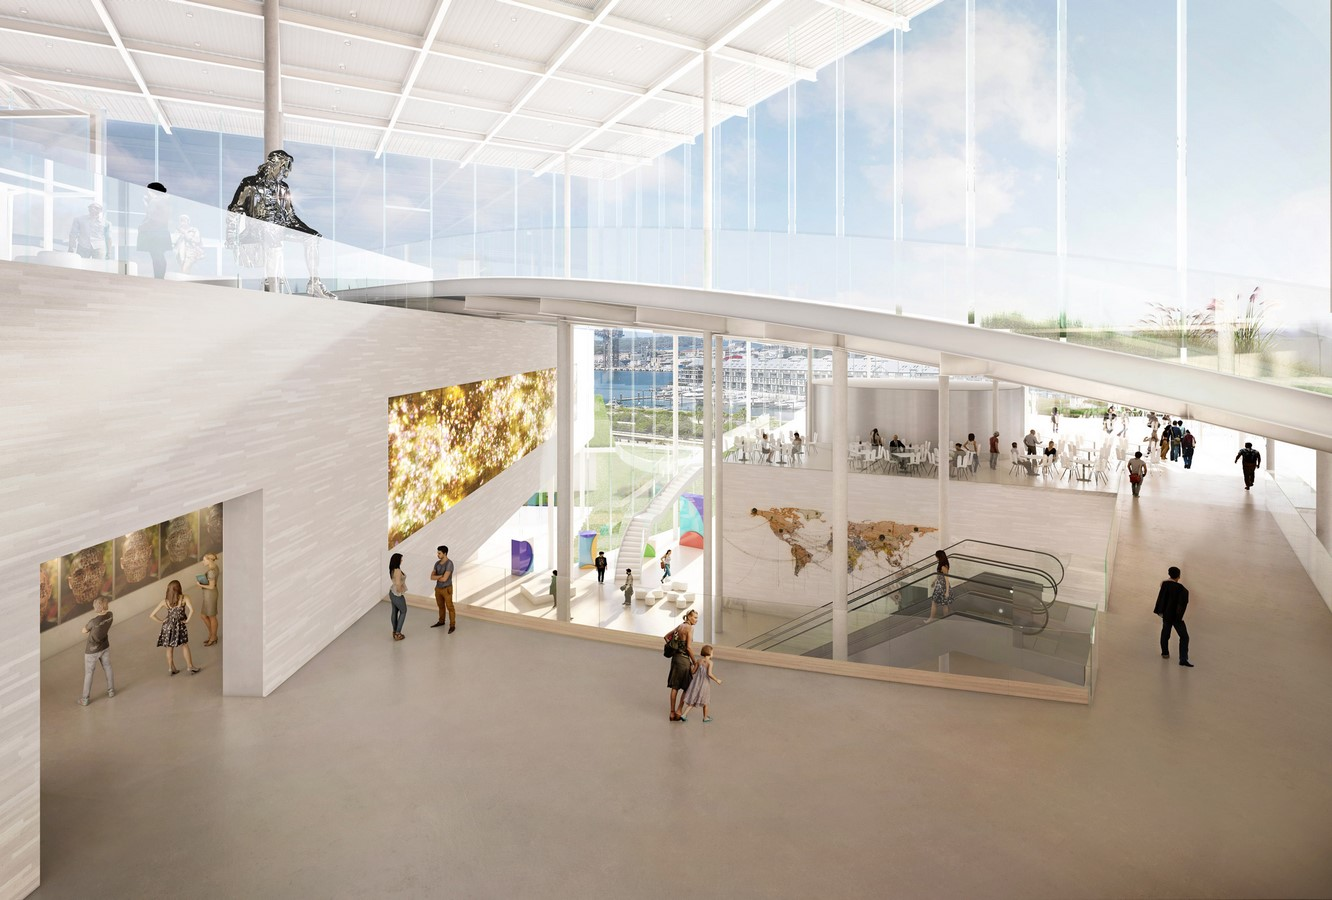 New Images For Art Gallery Of South Wales Expansion In Sydney revealed by SANAA - Sheet2